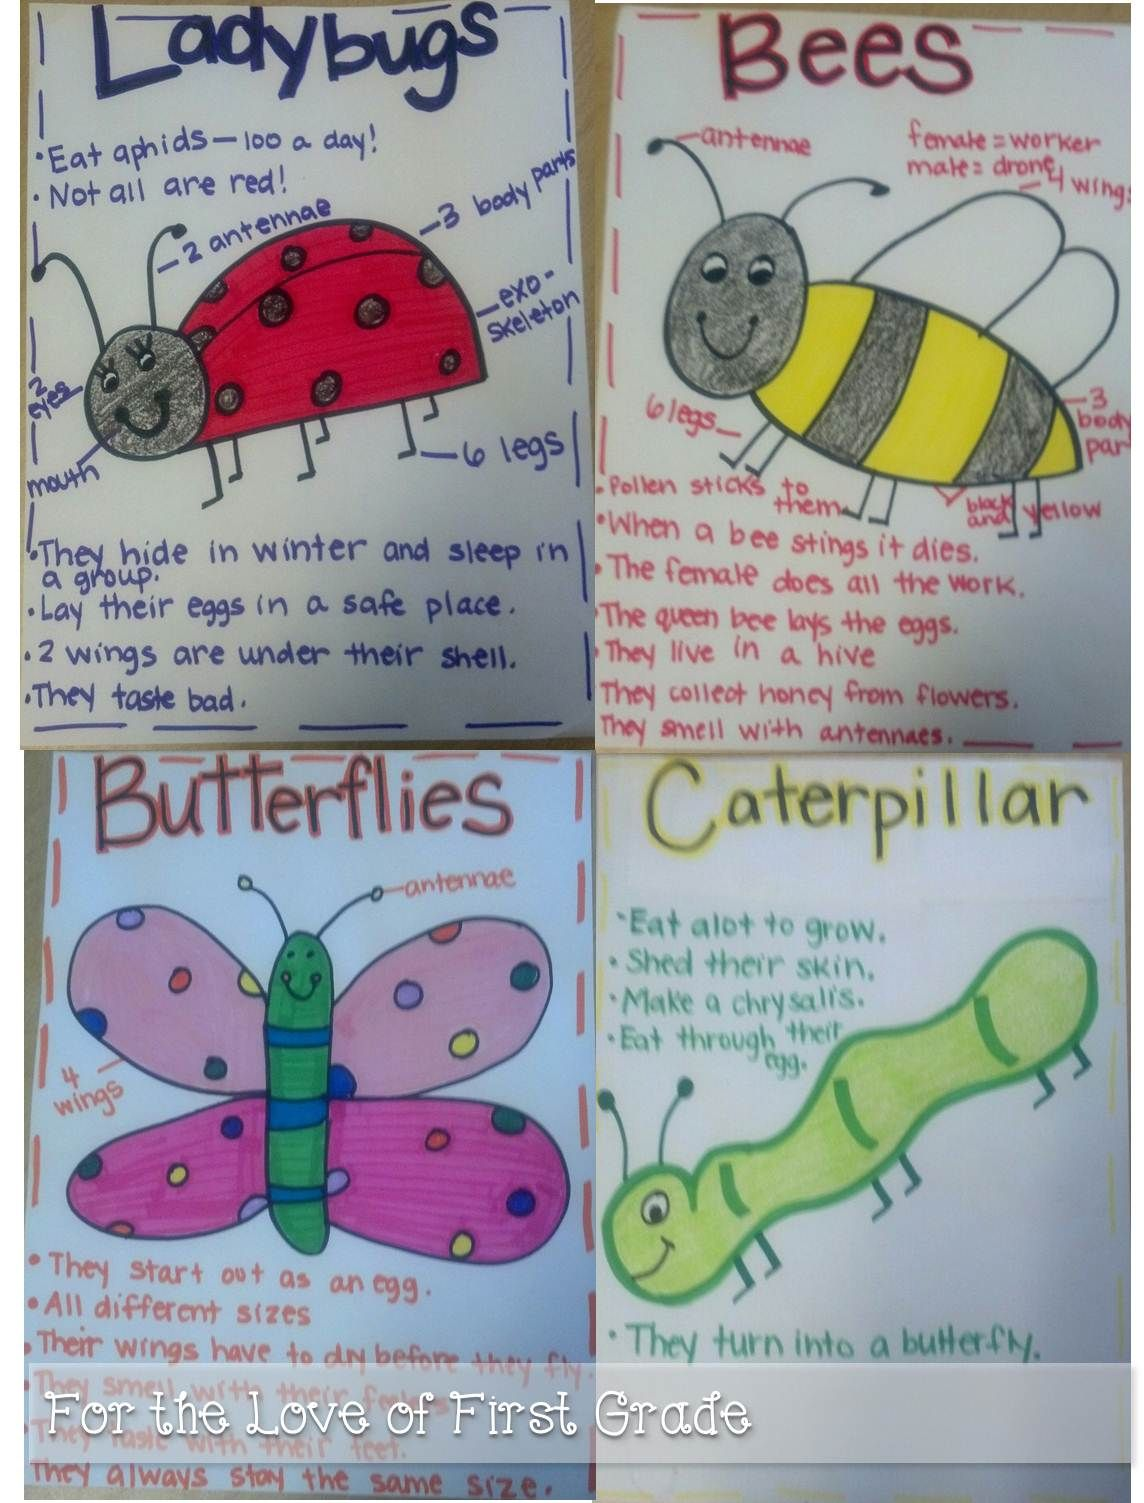 For The Love Of First Grade Insects